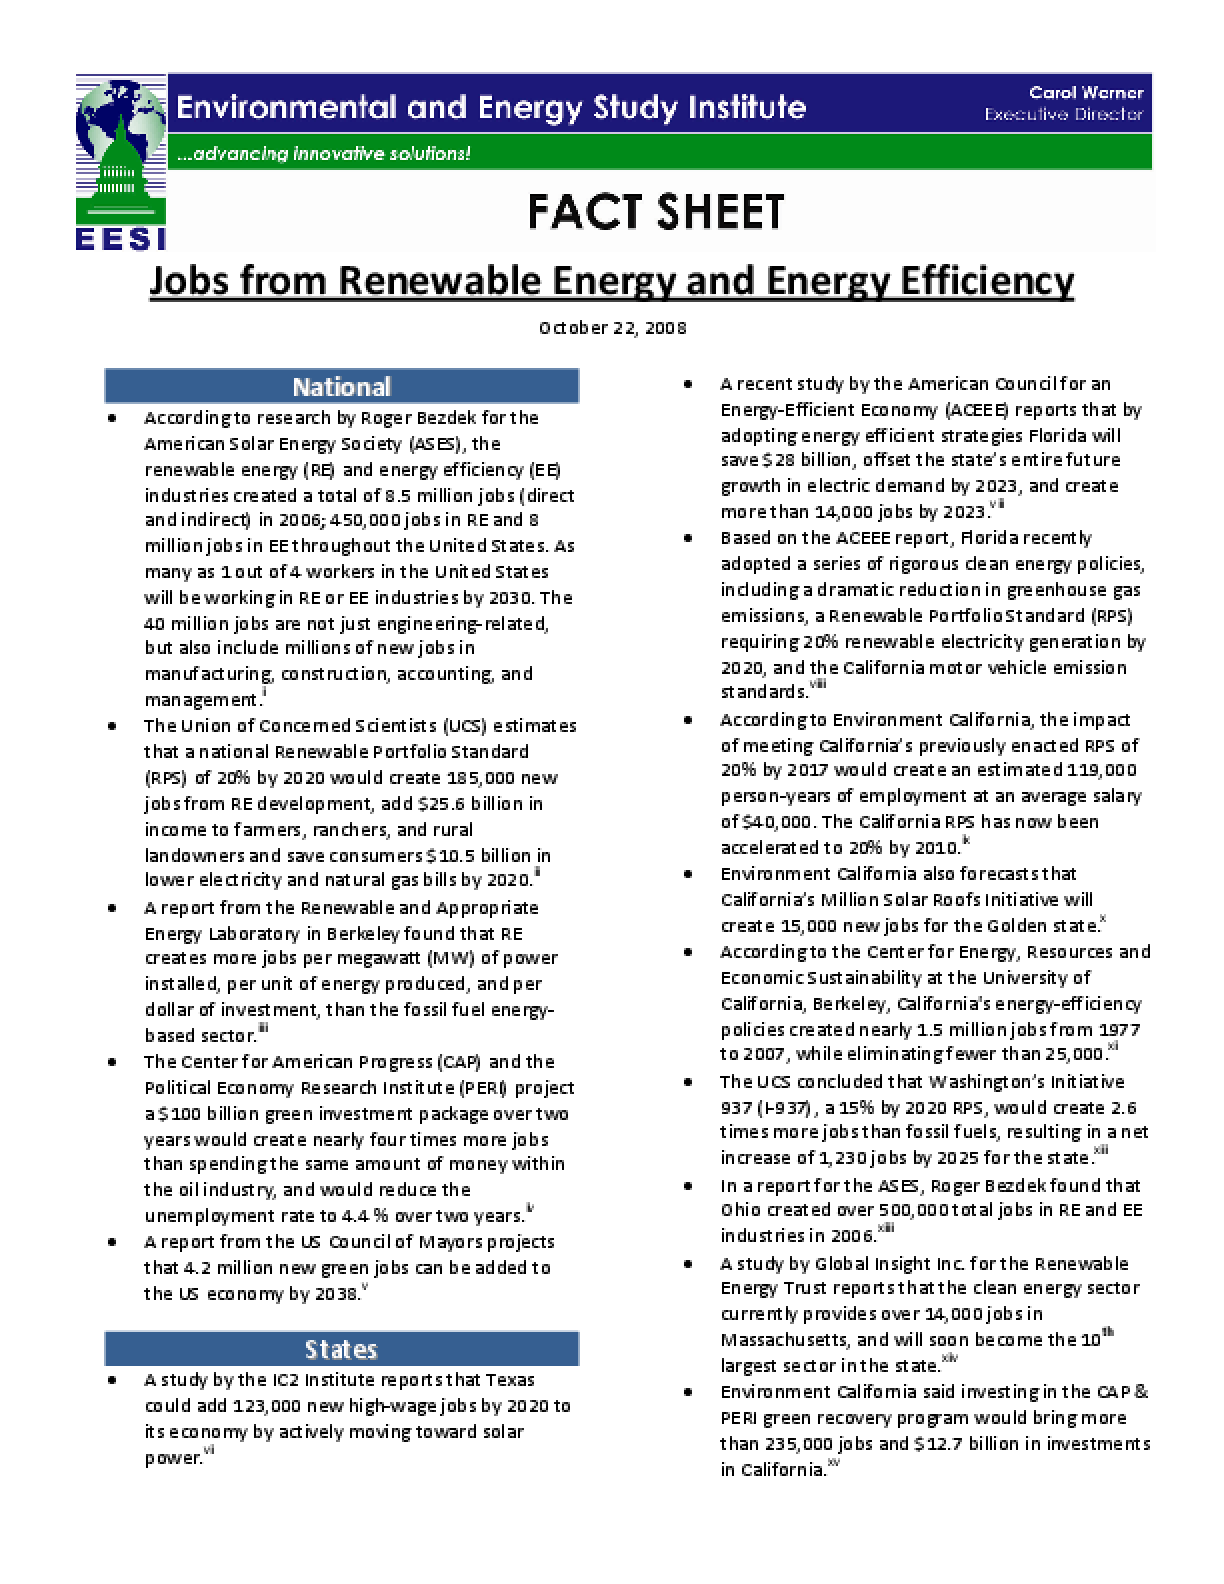 Jobs from Renewable Energy and Energy Efficiency